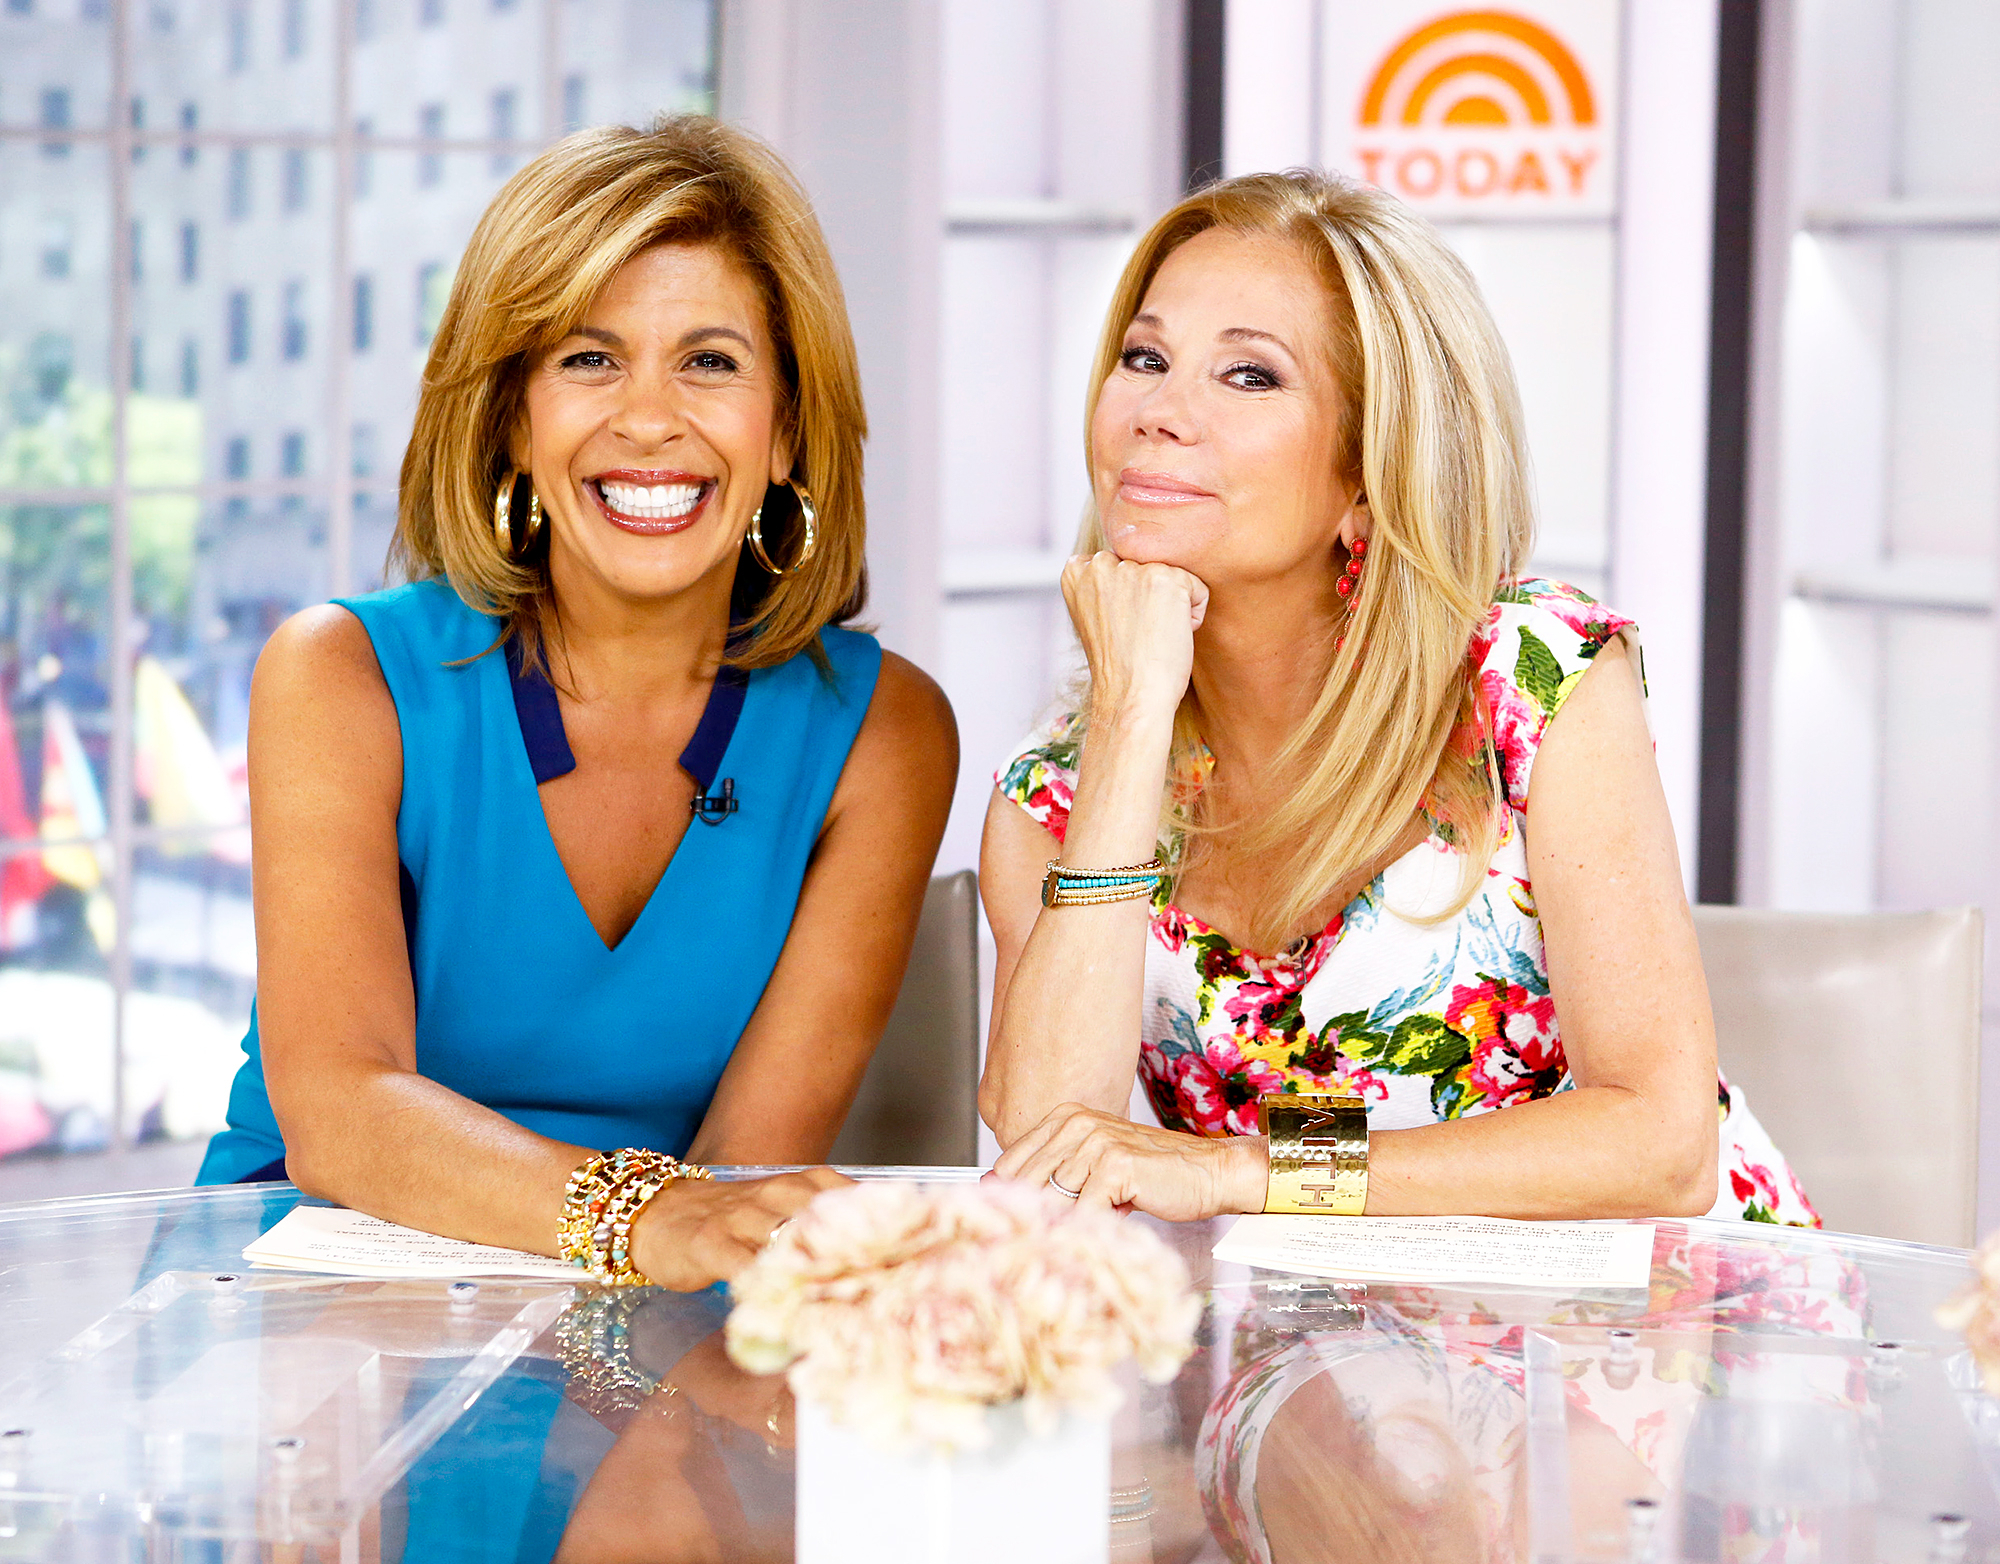 gifford singles Two years after her husband's death, kathie lee gifford is eager to find love again — but won't consider dating someone who doesn't share her christian faith.